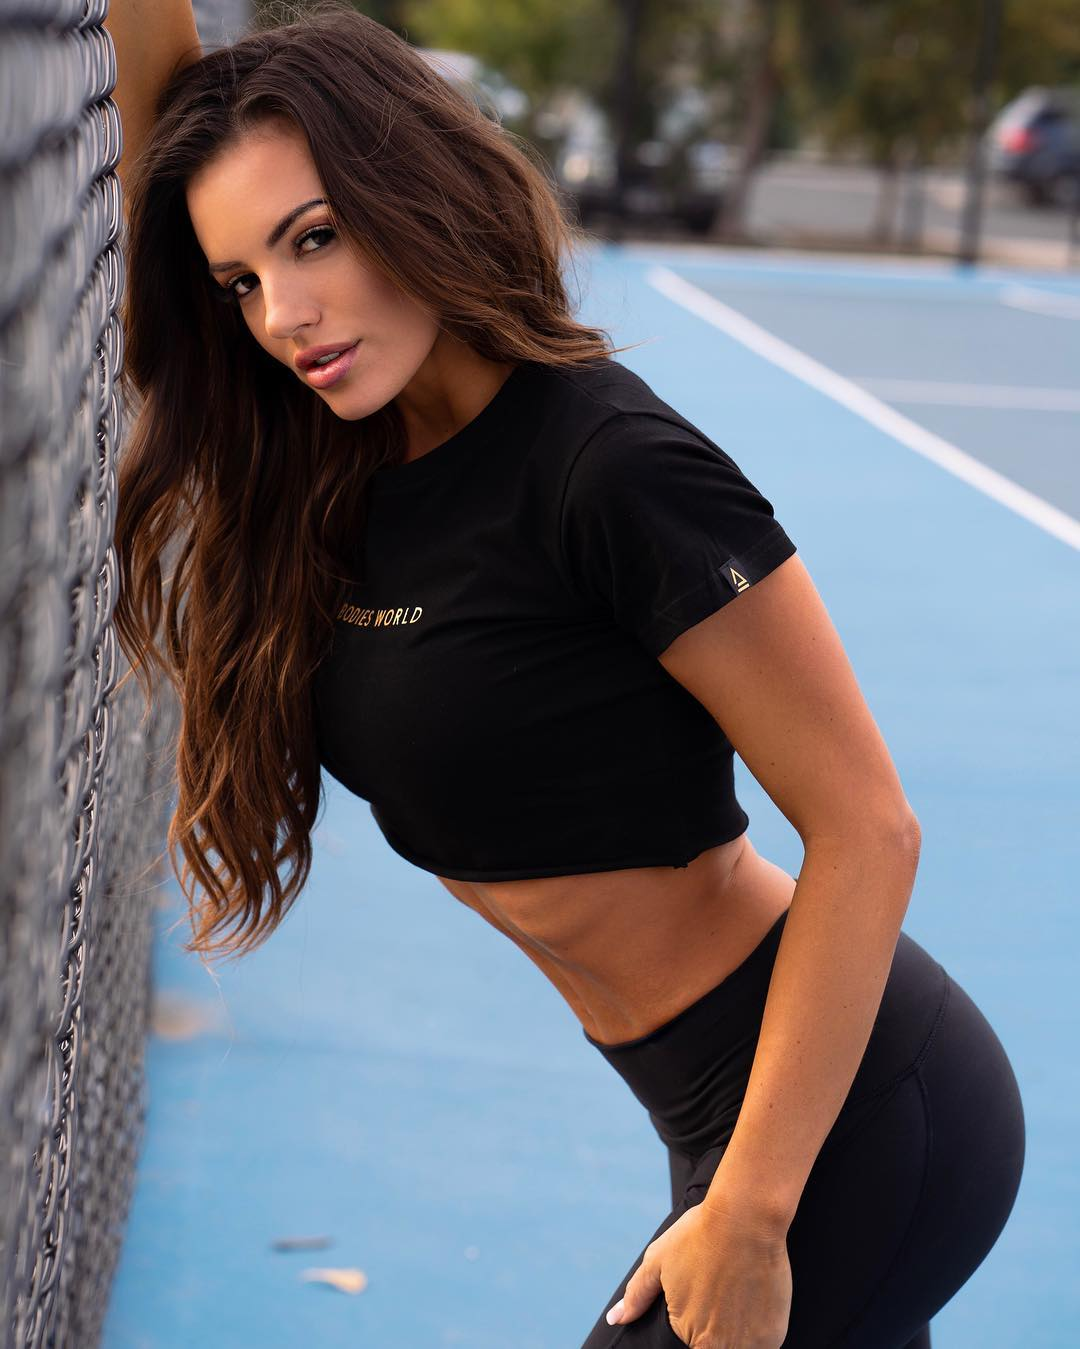 Amanda-Blanks-Wallpapers-Insta-Fit-Bio-7